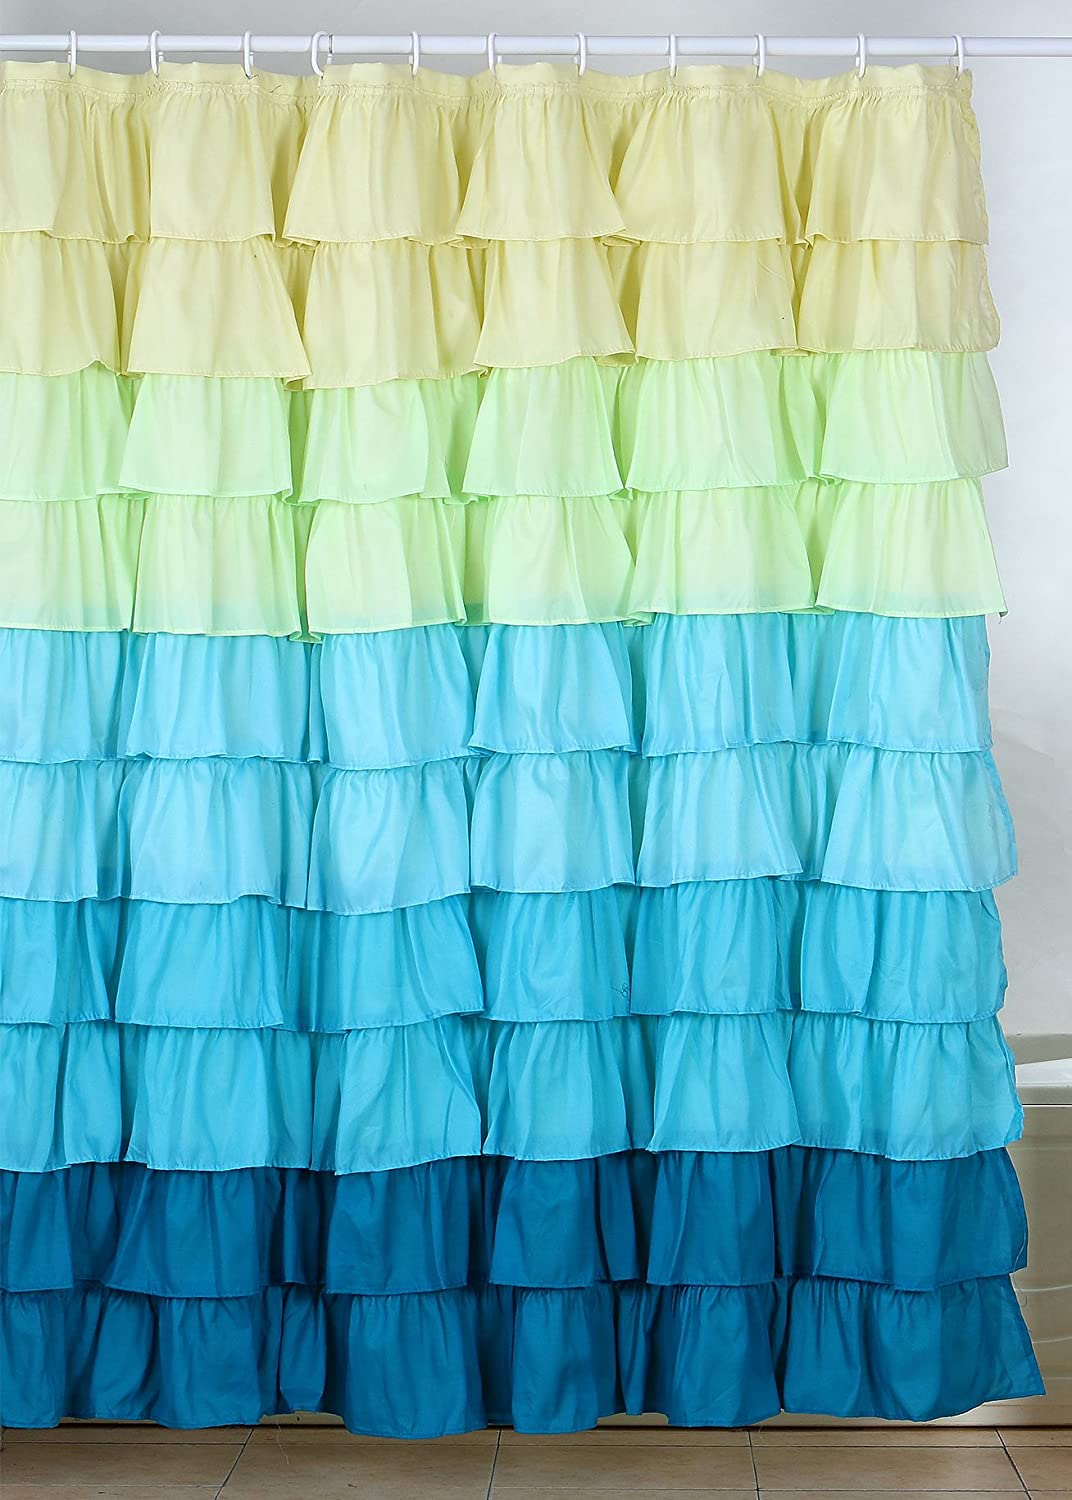 Amazon.com: Lavish Home Spring Ruffle Shower Curtain with ...